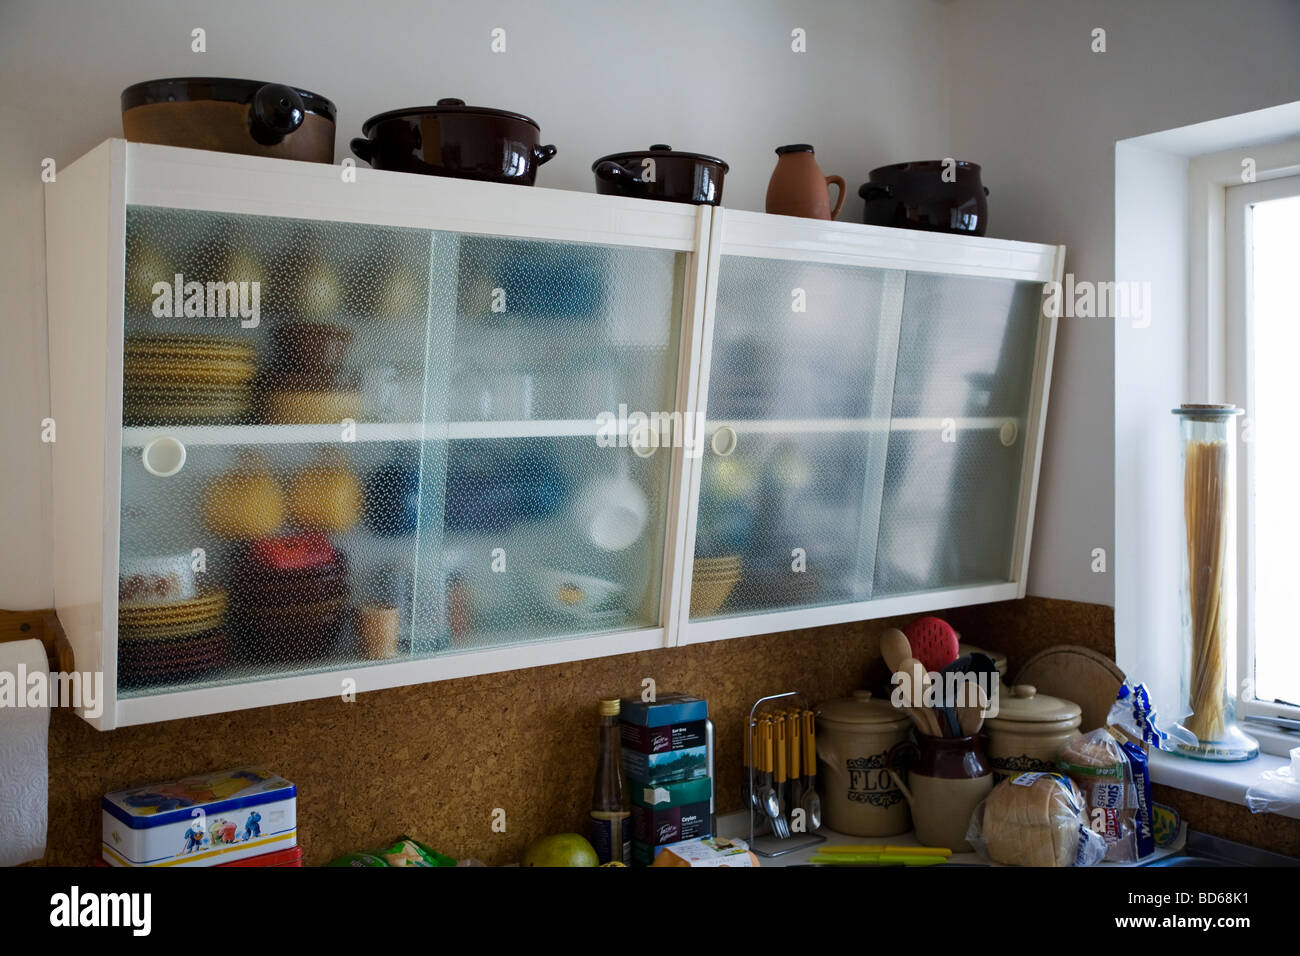 Retro Fifties Style Kitchen Cabinets Stock Photo 25339413 Alamy